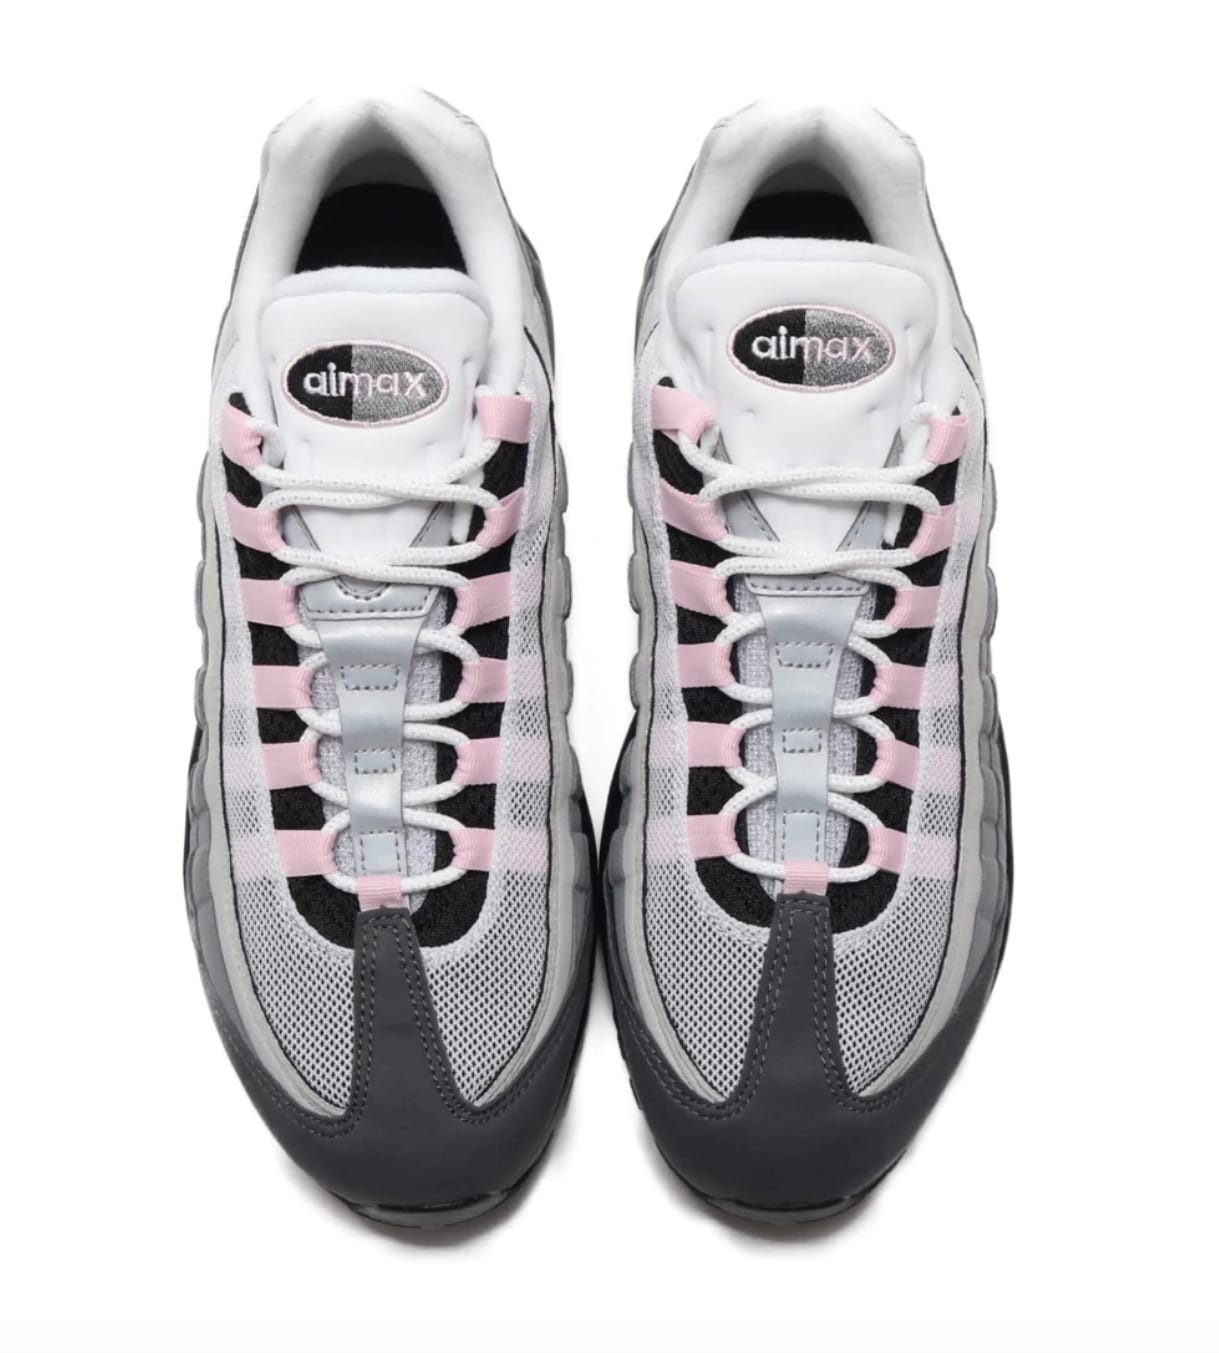 nike-air-max-95-prm-pink-foam-cj0588-001-top